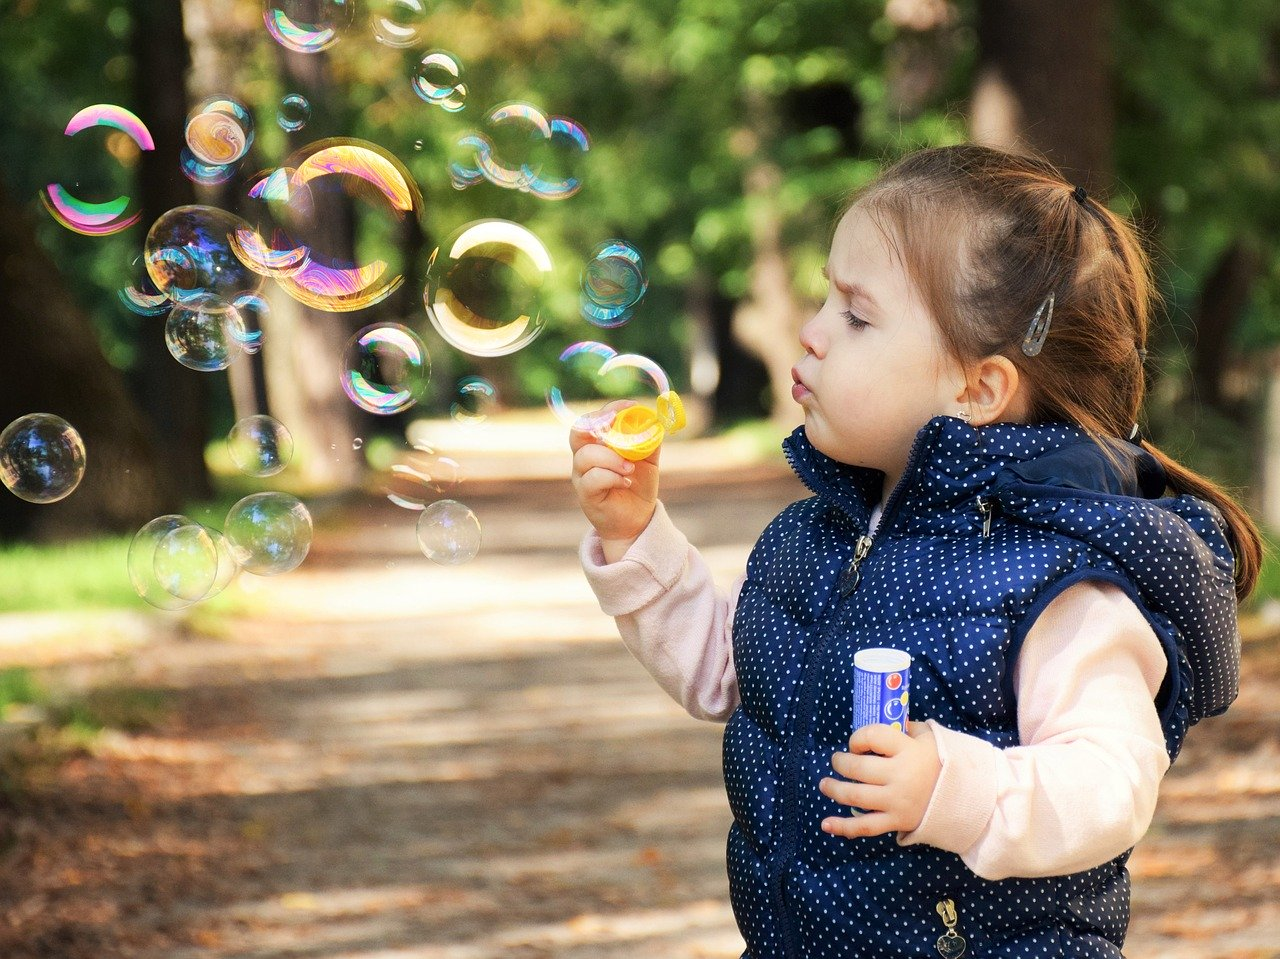 kid, soap bubbles, child